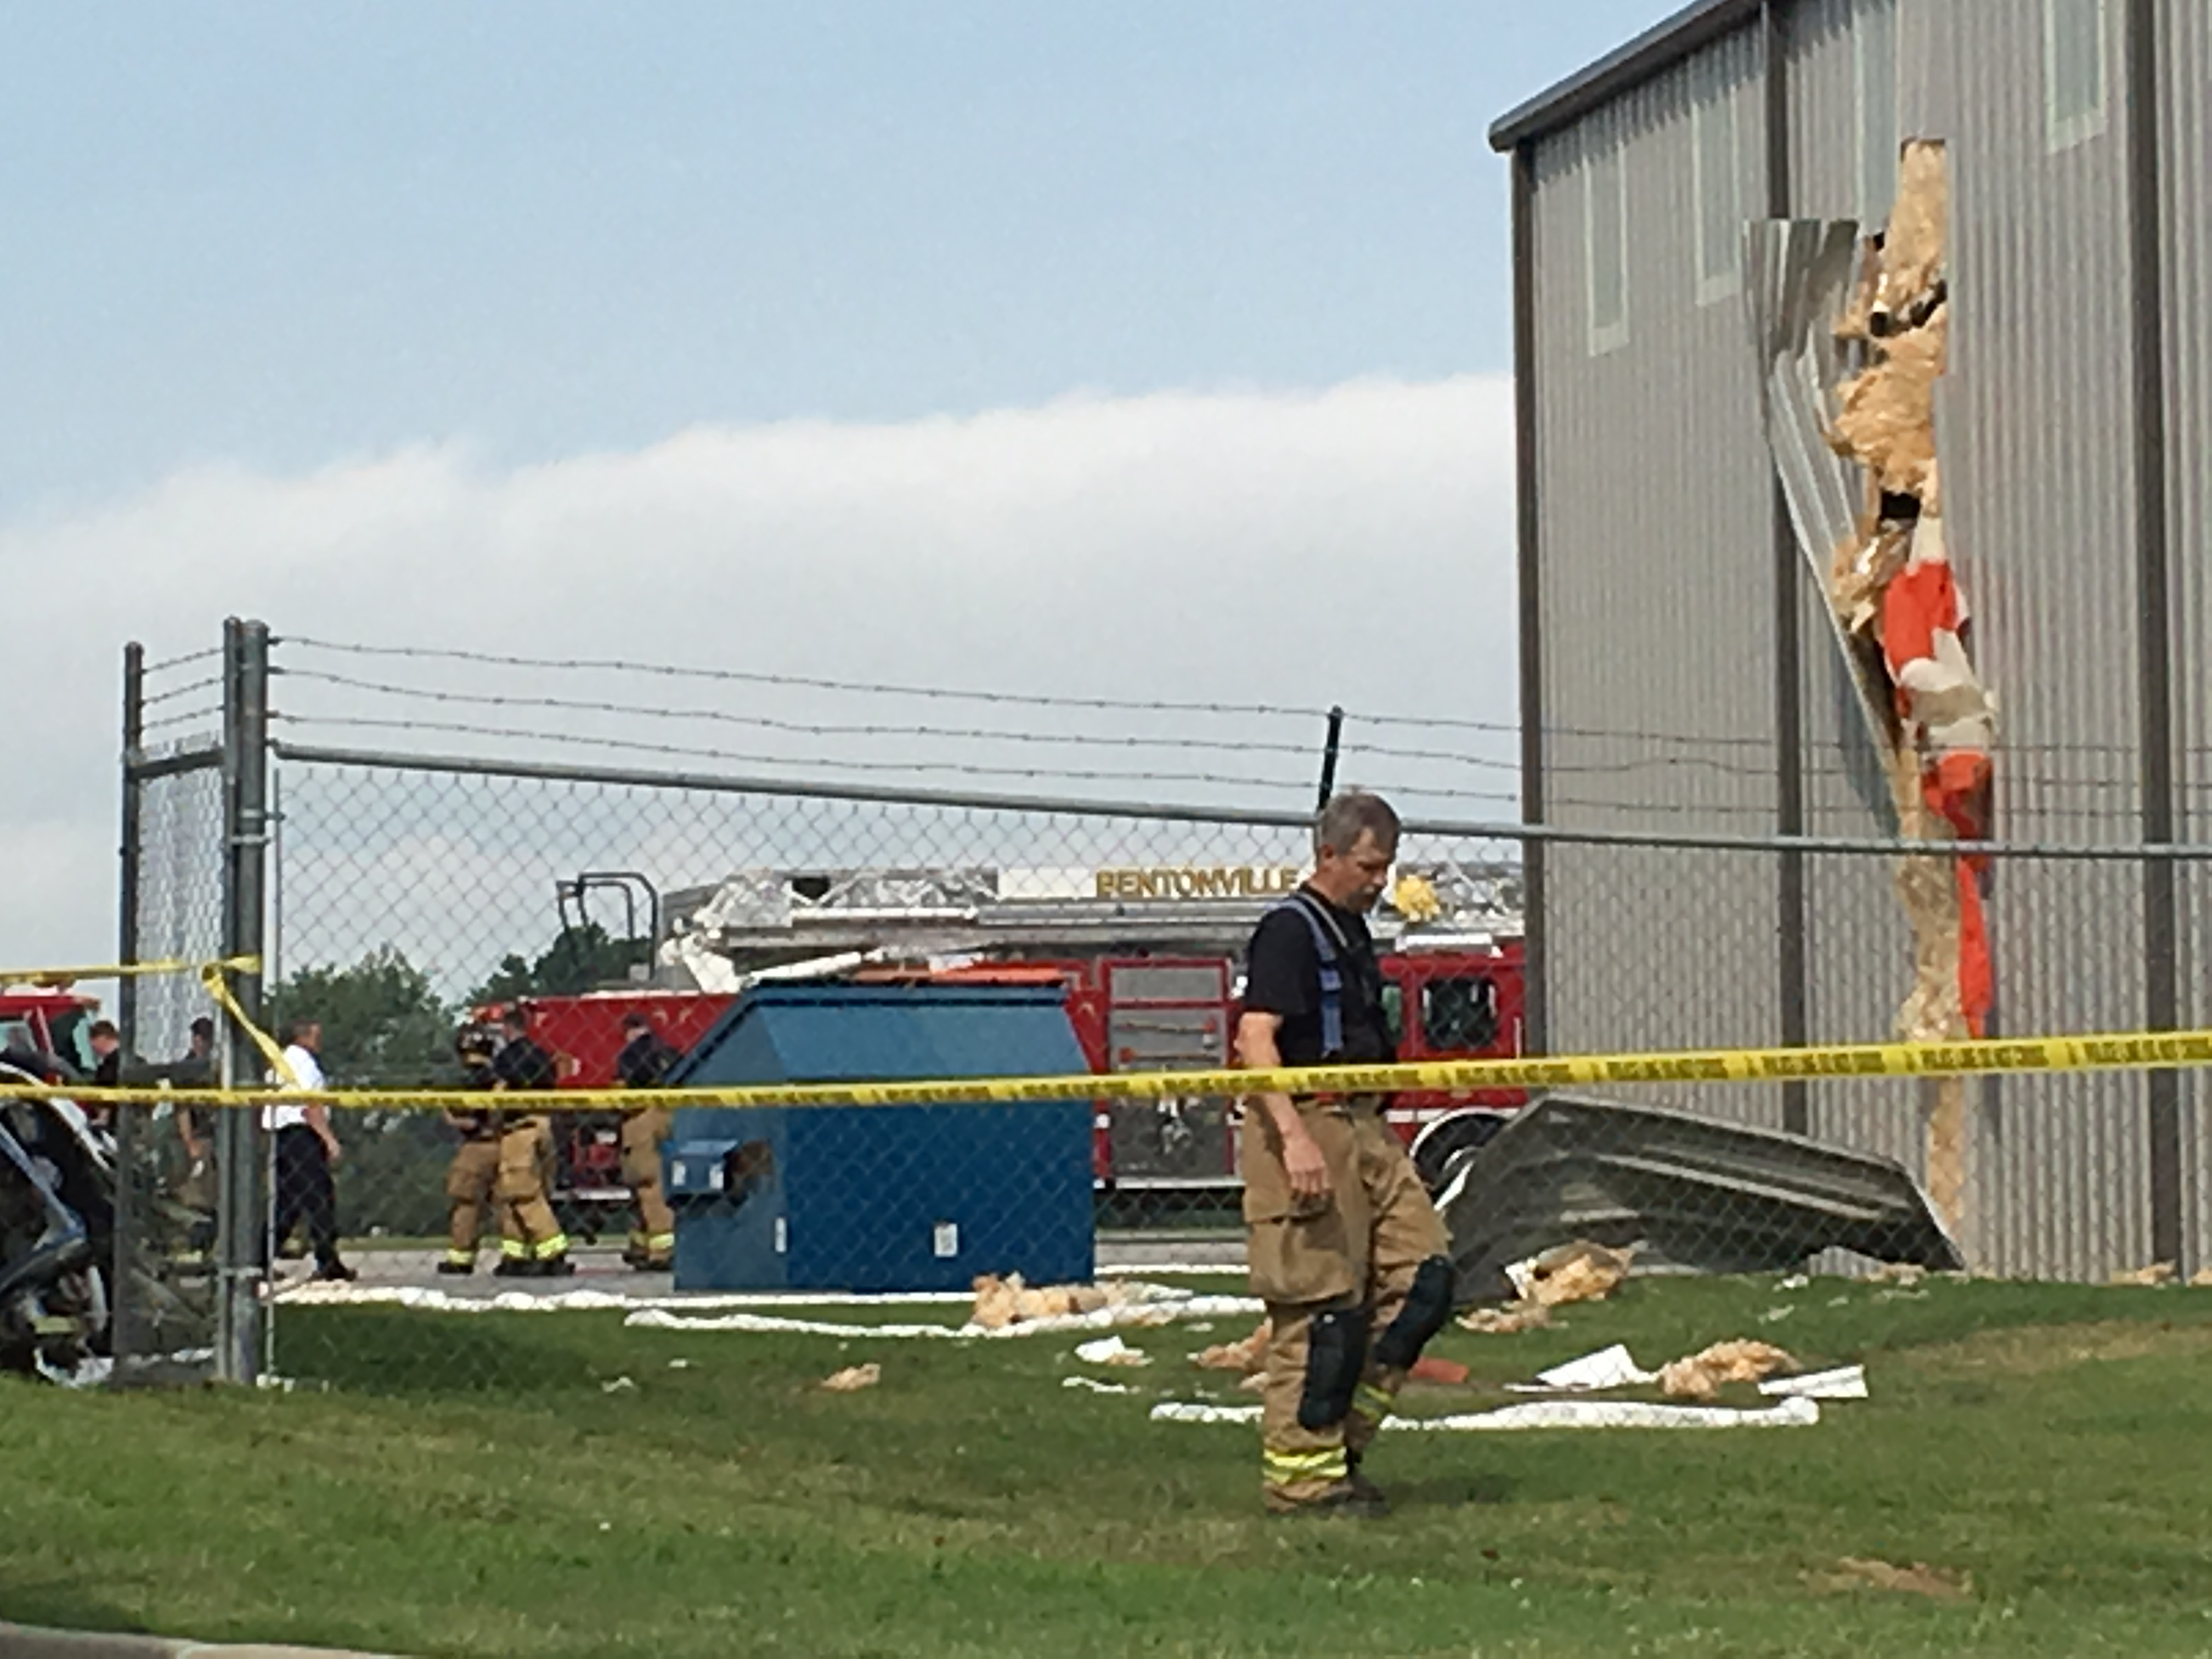 Pilot Dies After Plane Crashes into Hangar at Bentonville Airport